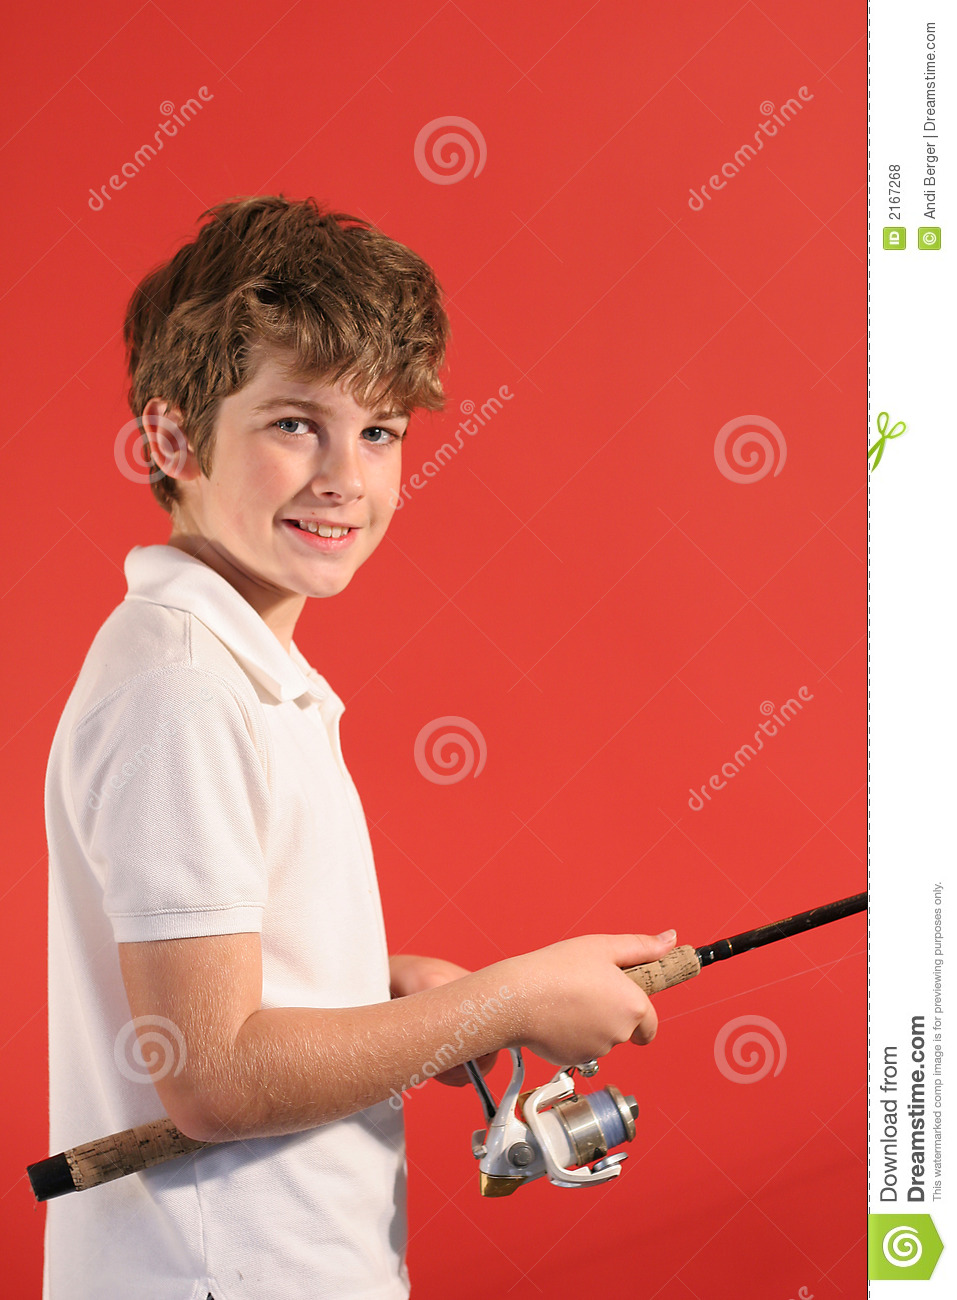 Boy with fishing pole